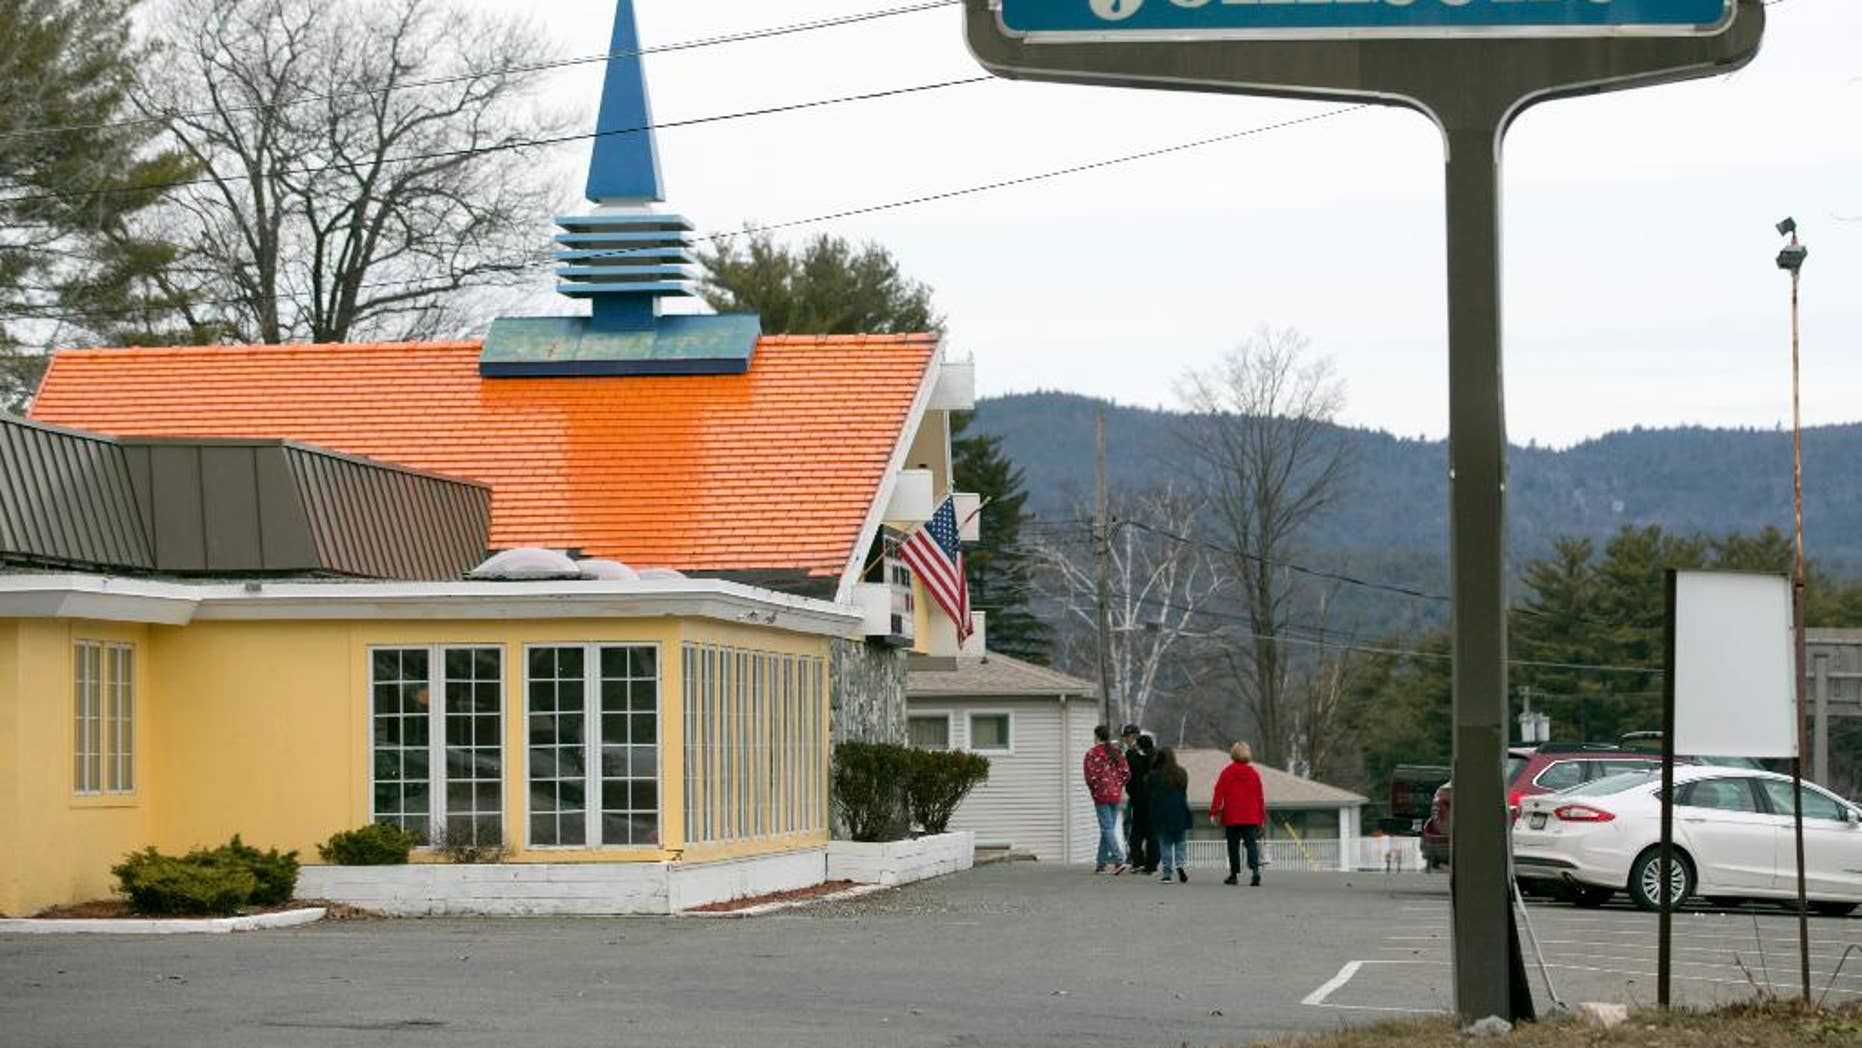 In this Wednesday, April 8, 2015 photo, customers walk into Howard Johnson's Restaurant in Lake George, N.Y. The HoJo's on the main strip of the Adirondack Mountain resort town of Lake George and another in Bangor, Maine, are the last two restaurants operating under the famous name.  (AP Photo/Mike Groll)